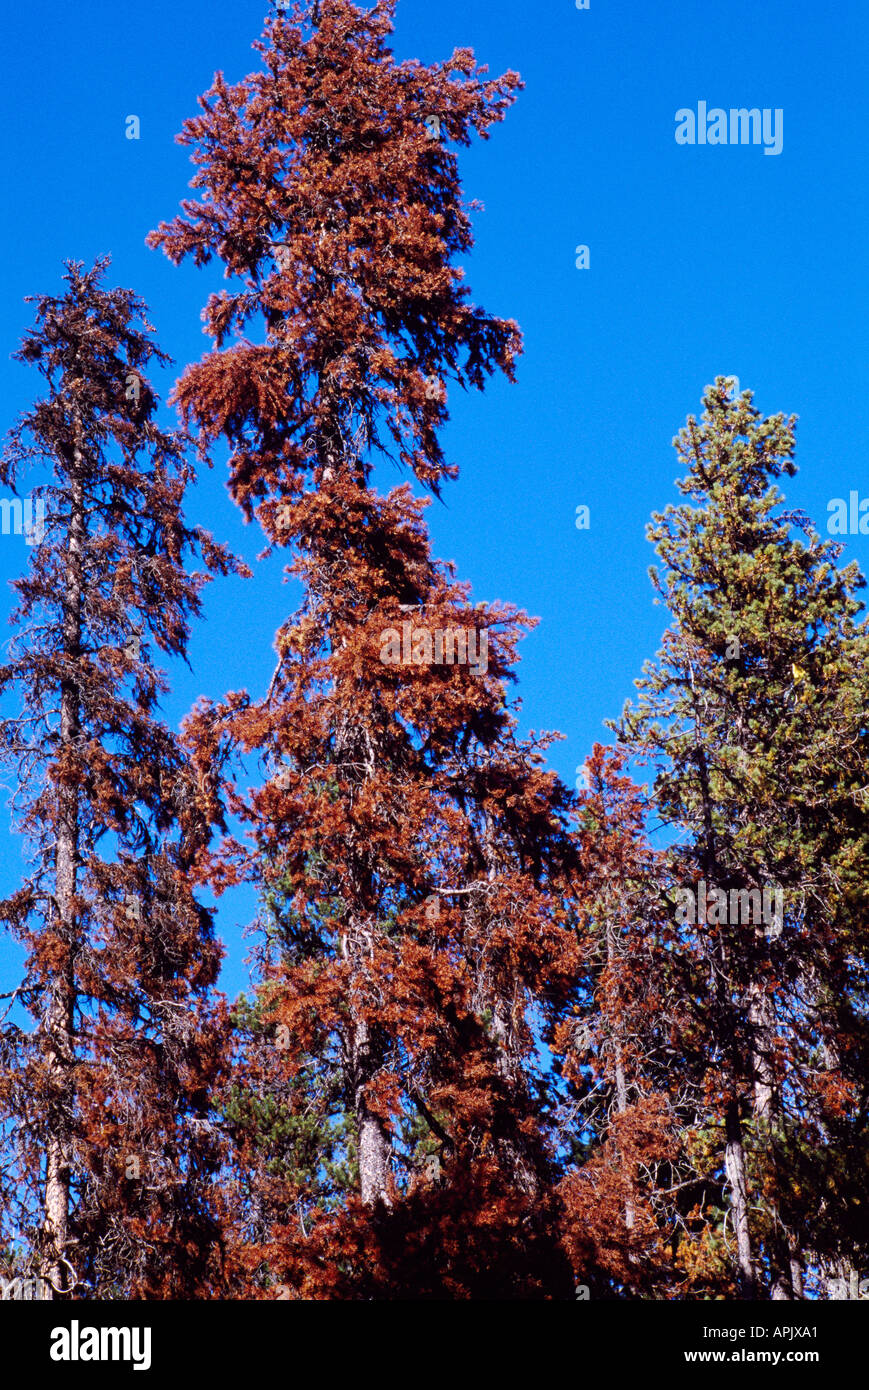 Dying Lodgepole Pine Trees (Pinus contorta) infested by Mountain Pine Beetle, Insect Infestation, BC, British Columbia, Canada - Stock Image